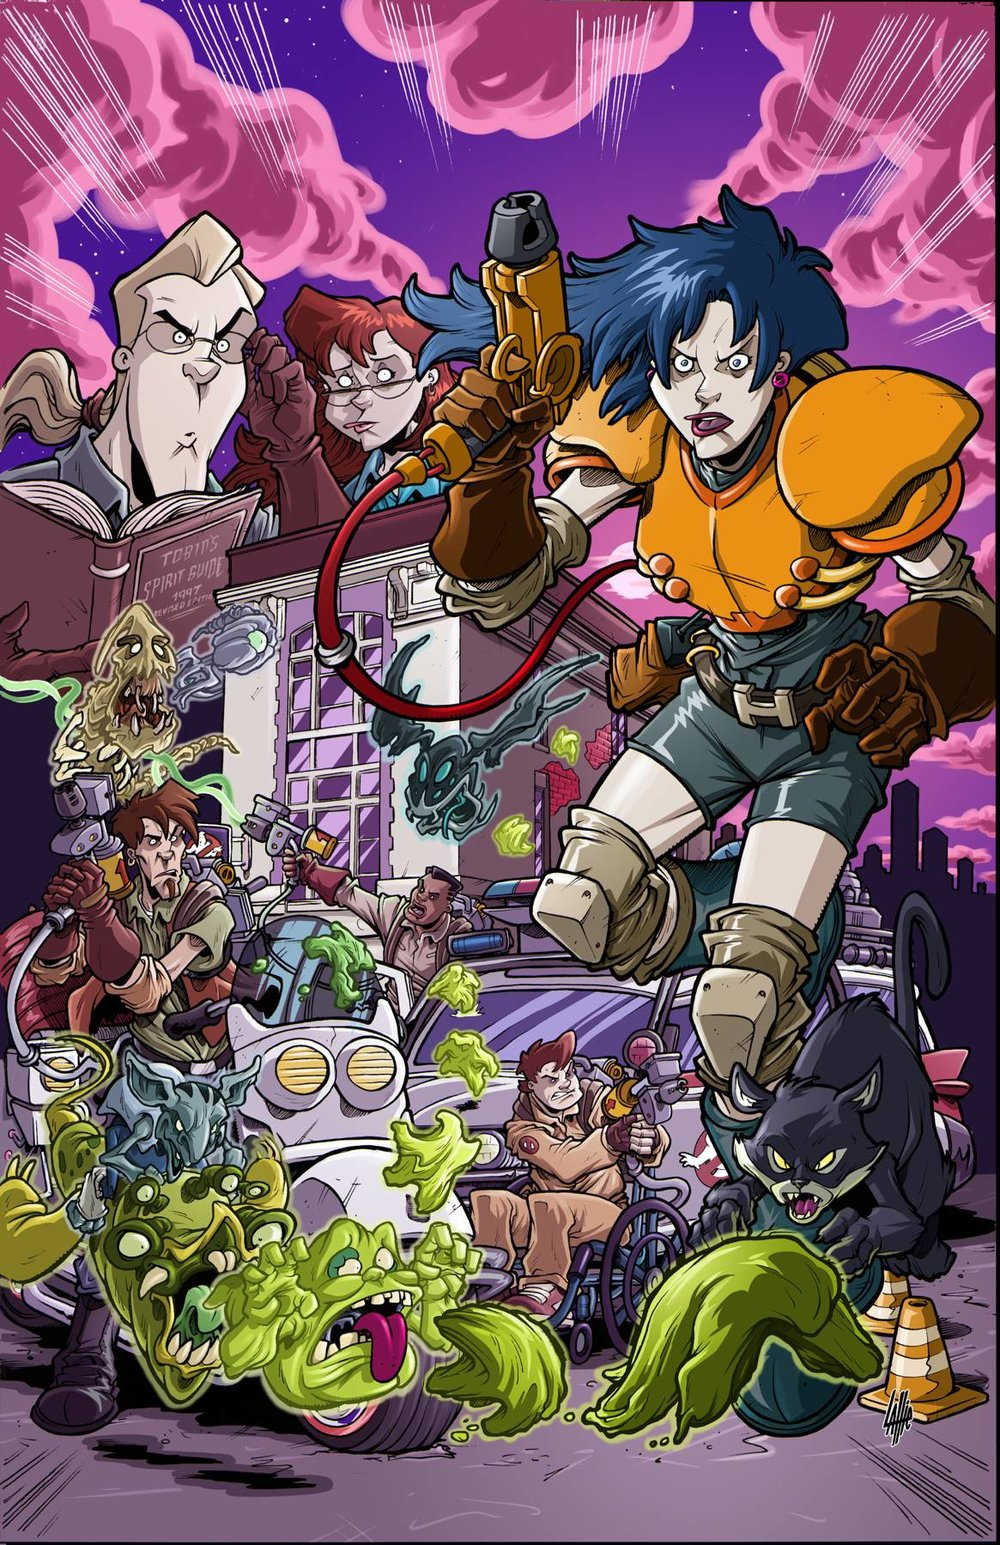 GHOSTBUSTERS 35TH ANNIV EXTREME GHOSTBUSTERS